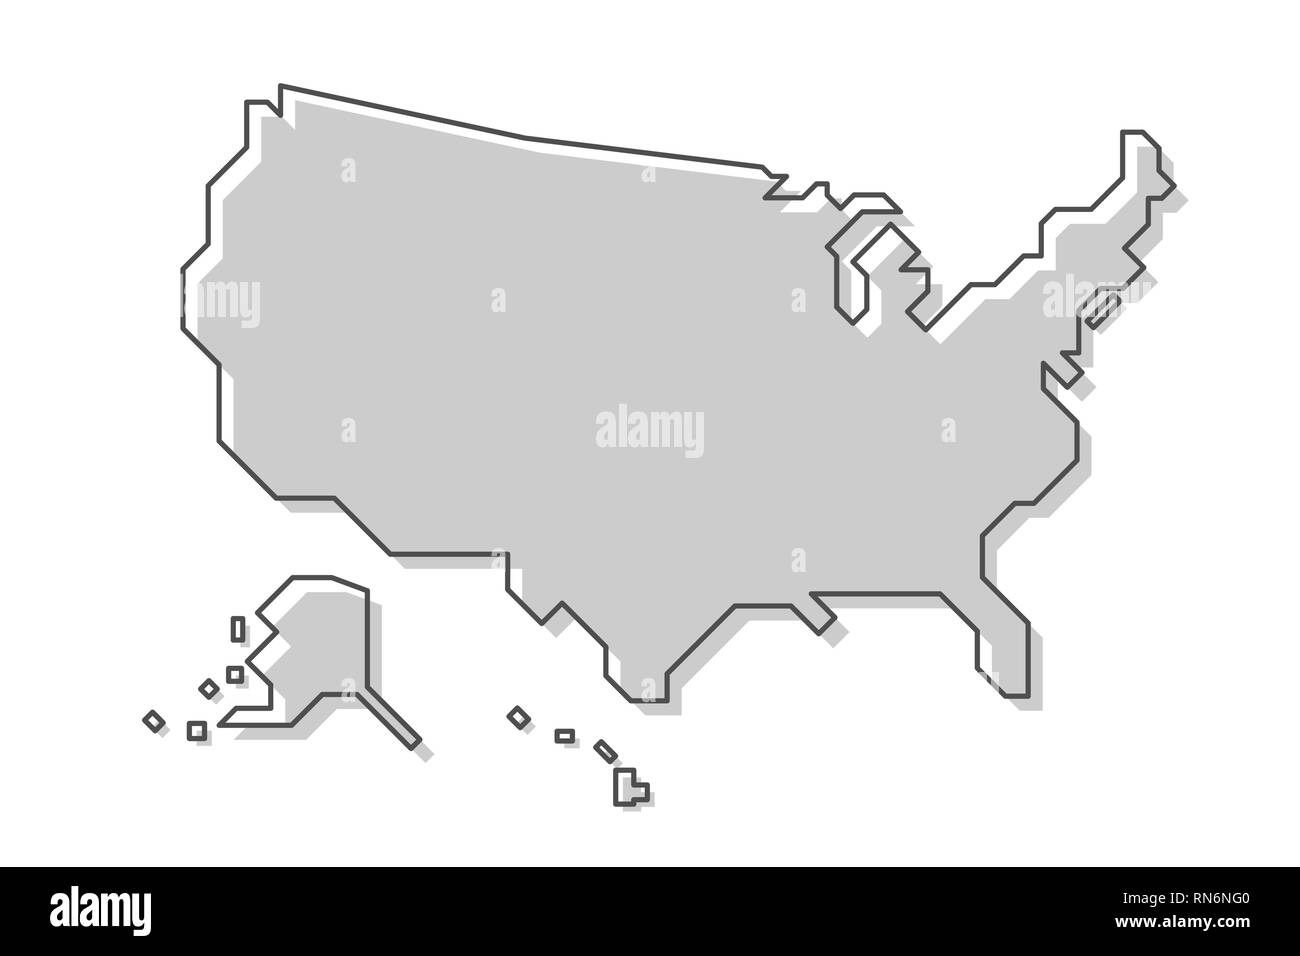 Image of: United States Of America Map Modern Simple Line Style Vector Stock Vector Image Art Alamy